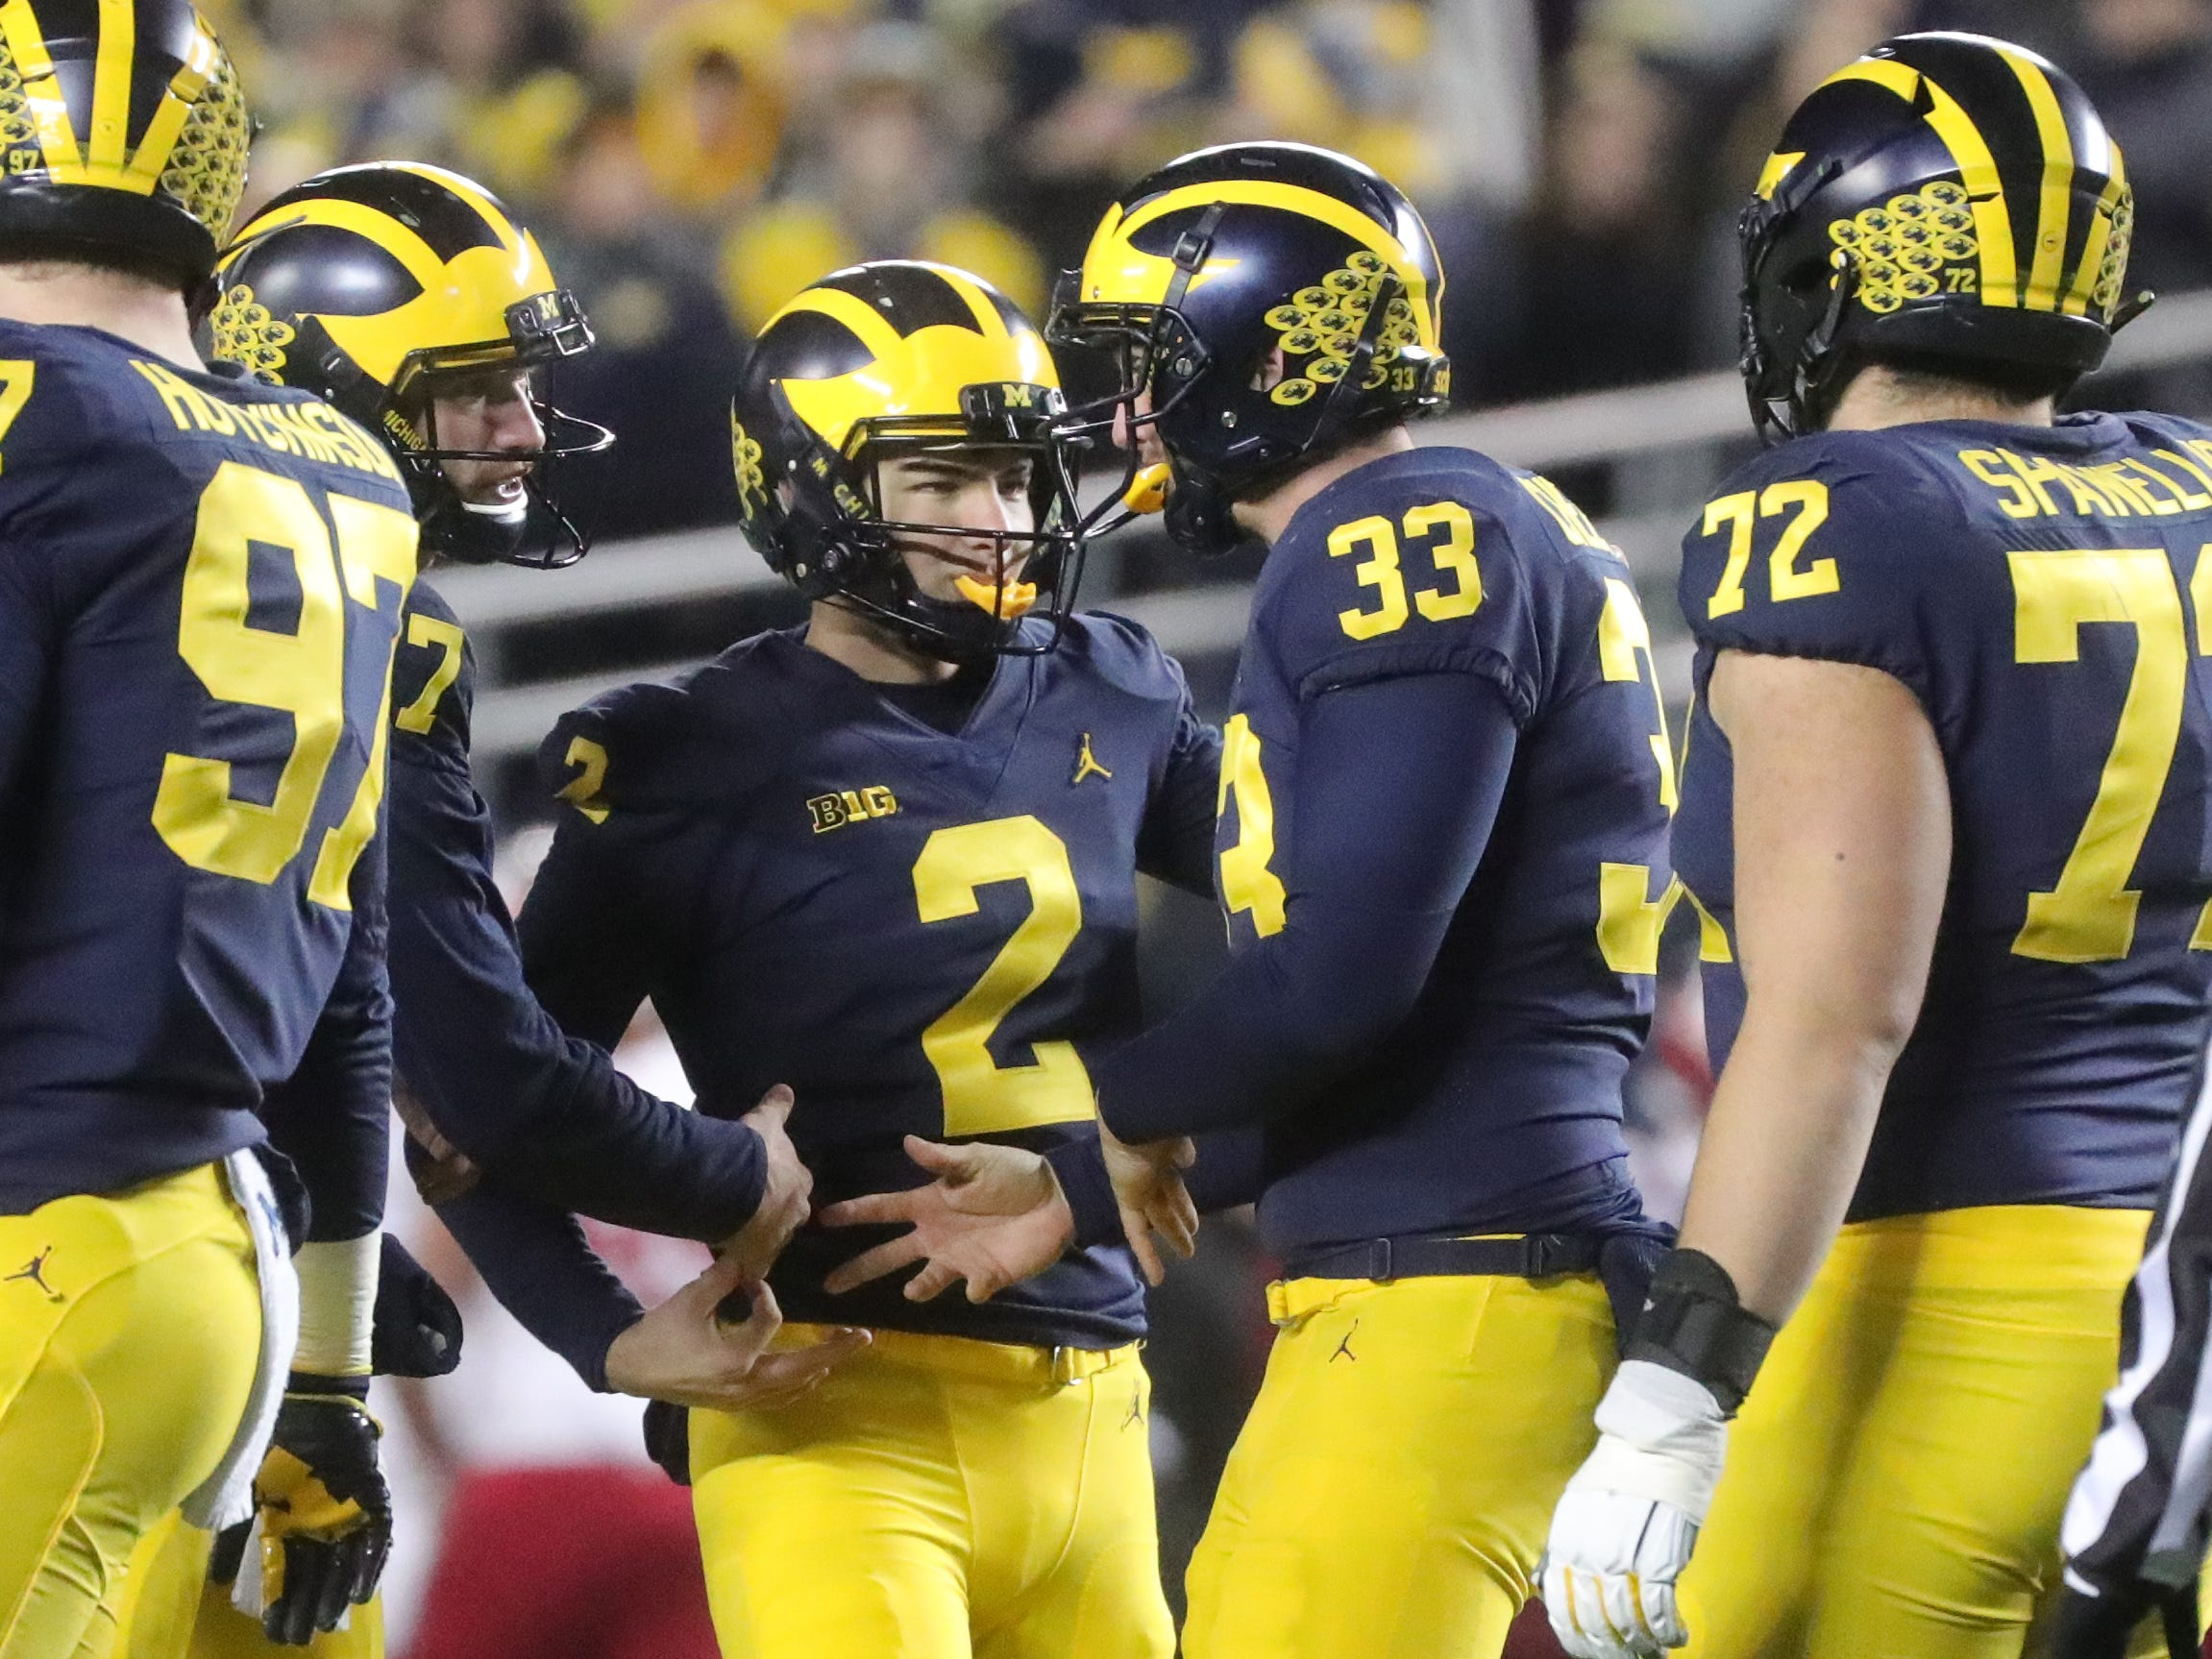 Michigan football's Jake Moody sets field goal record in debut